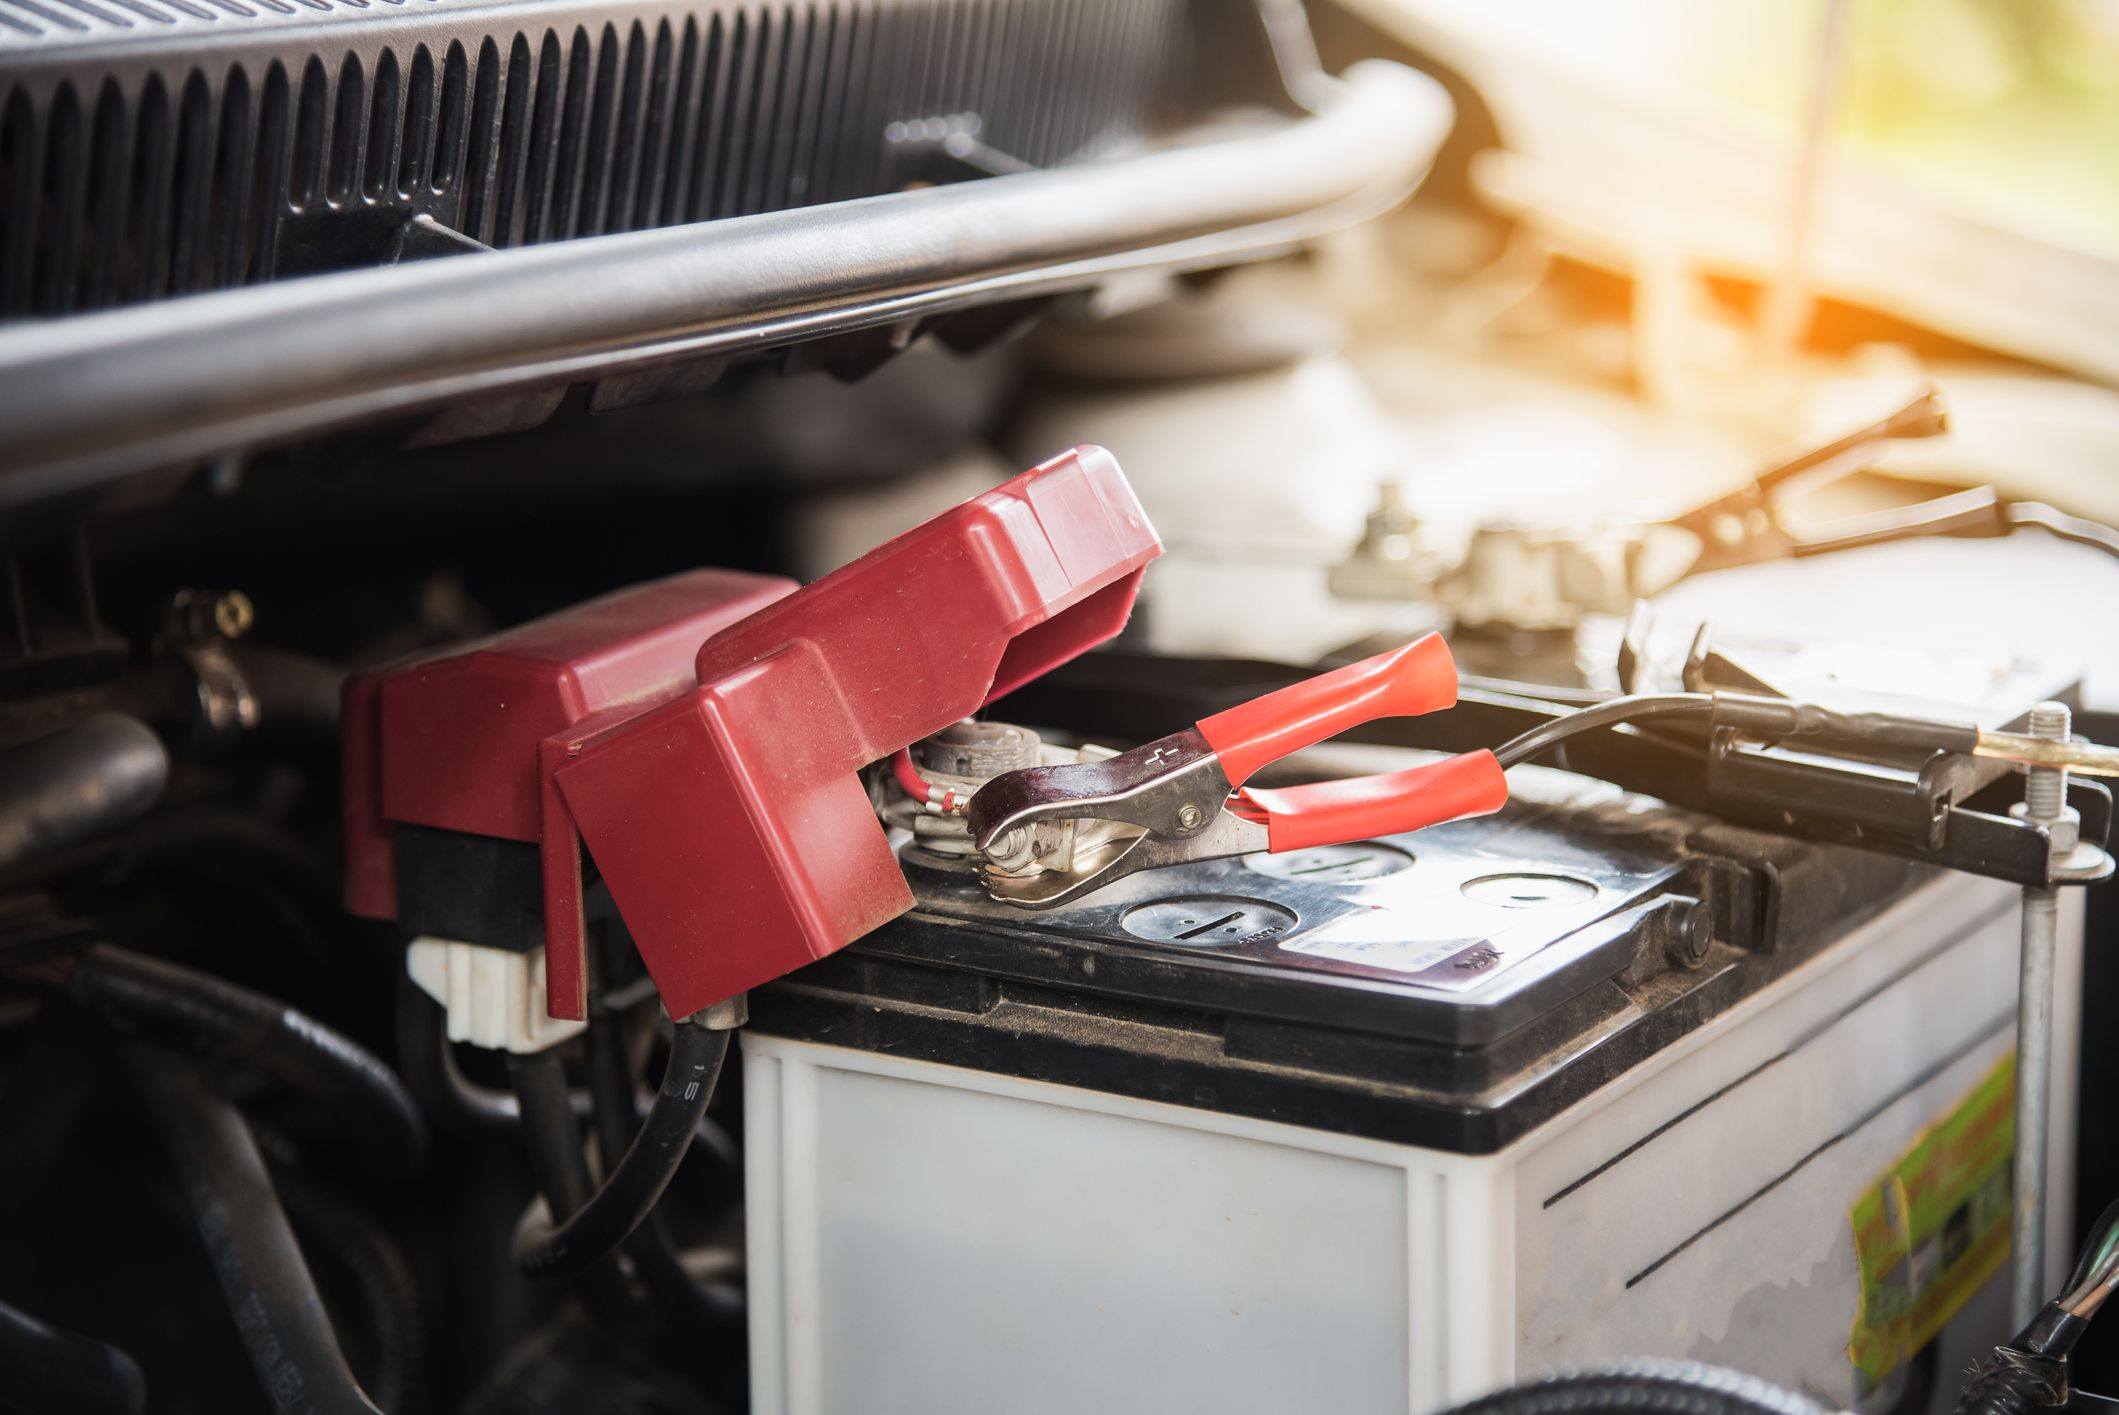 How To Jump Start A Car 5 Steps For Using Jumper Cables